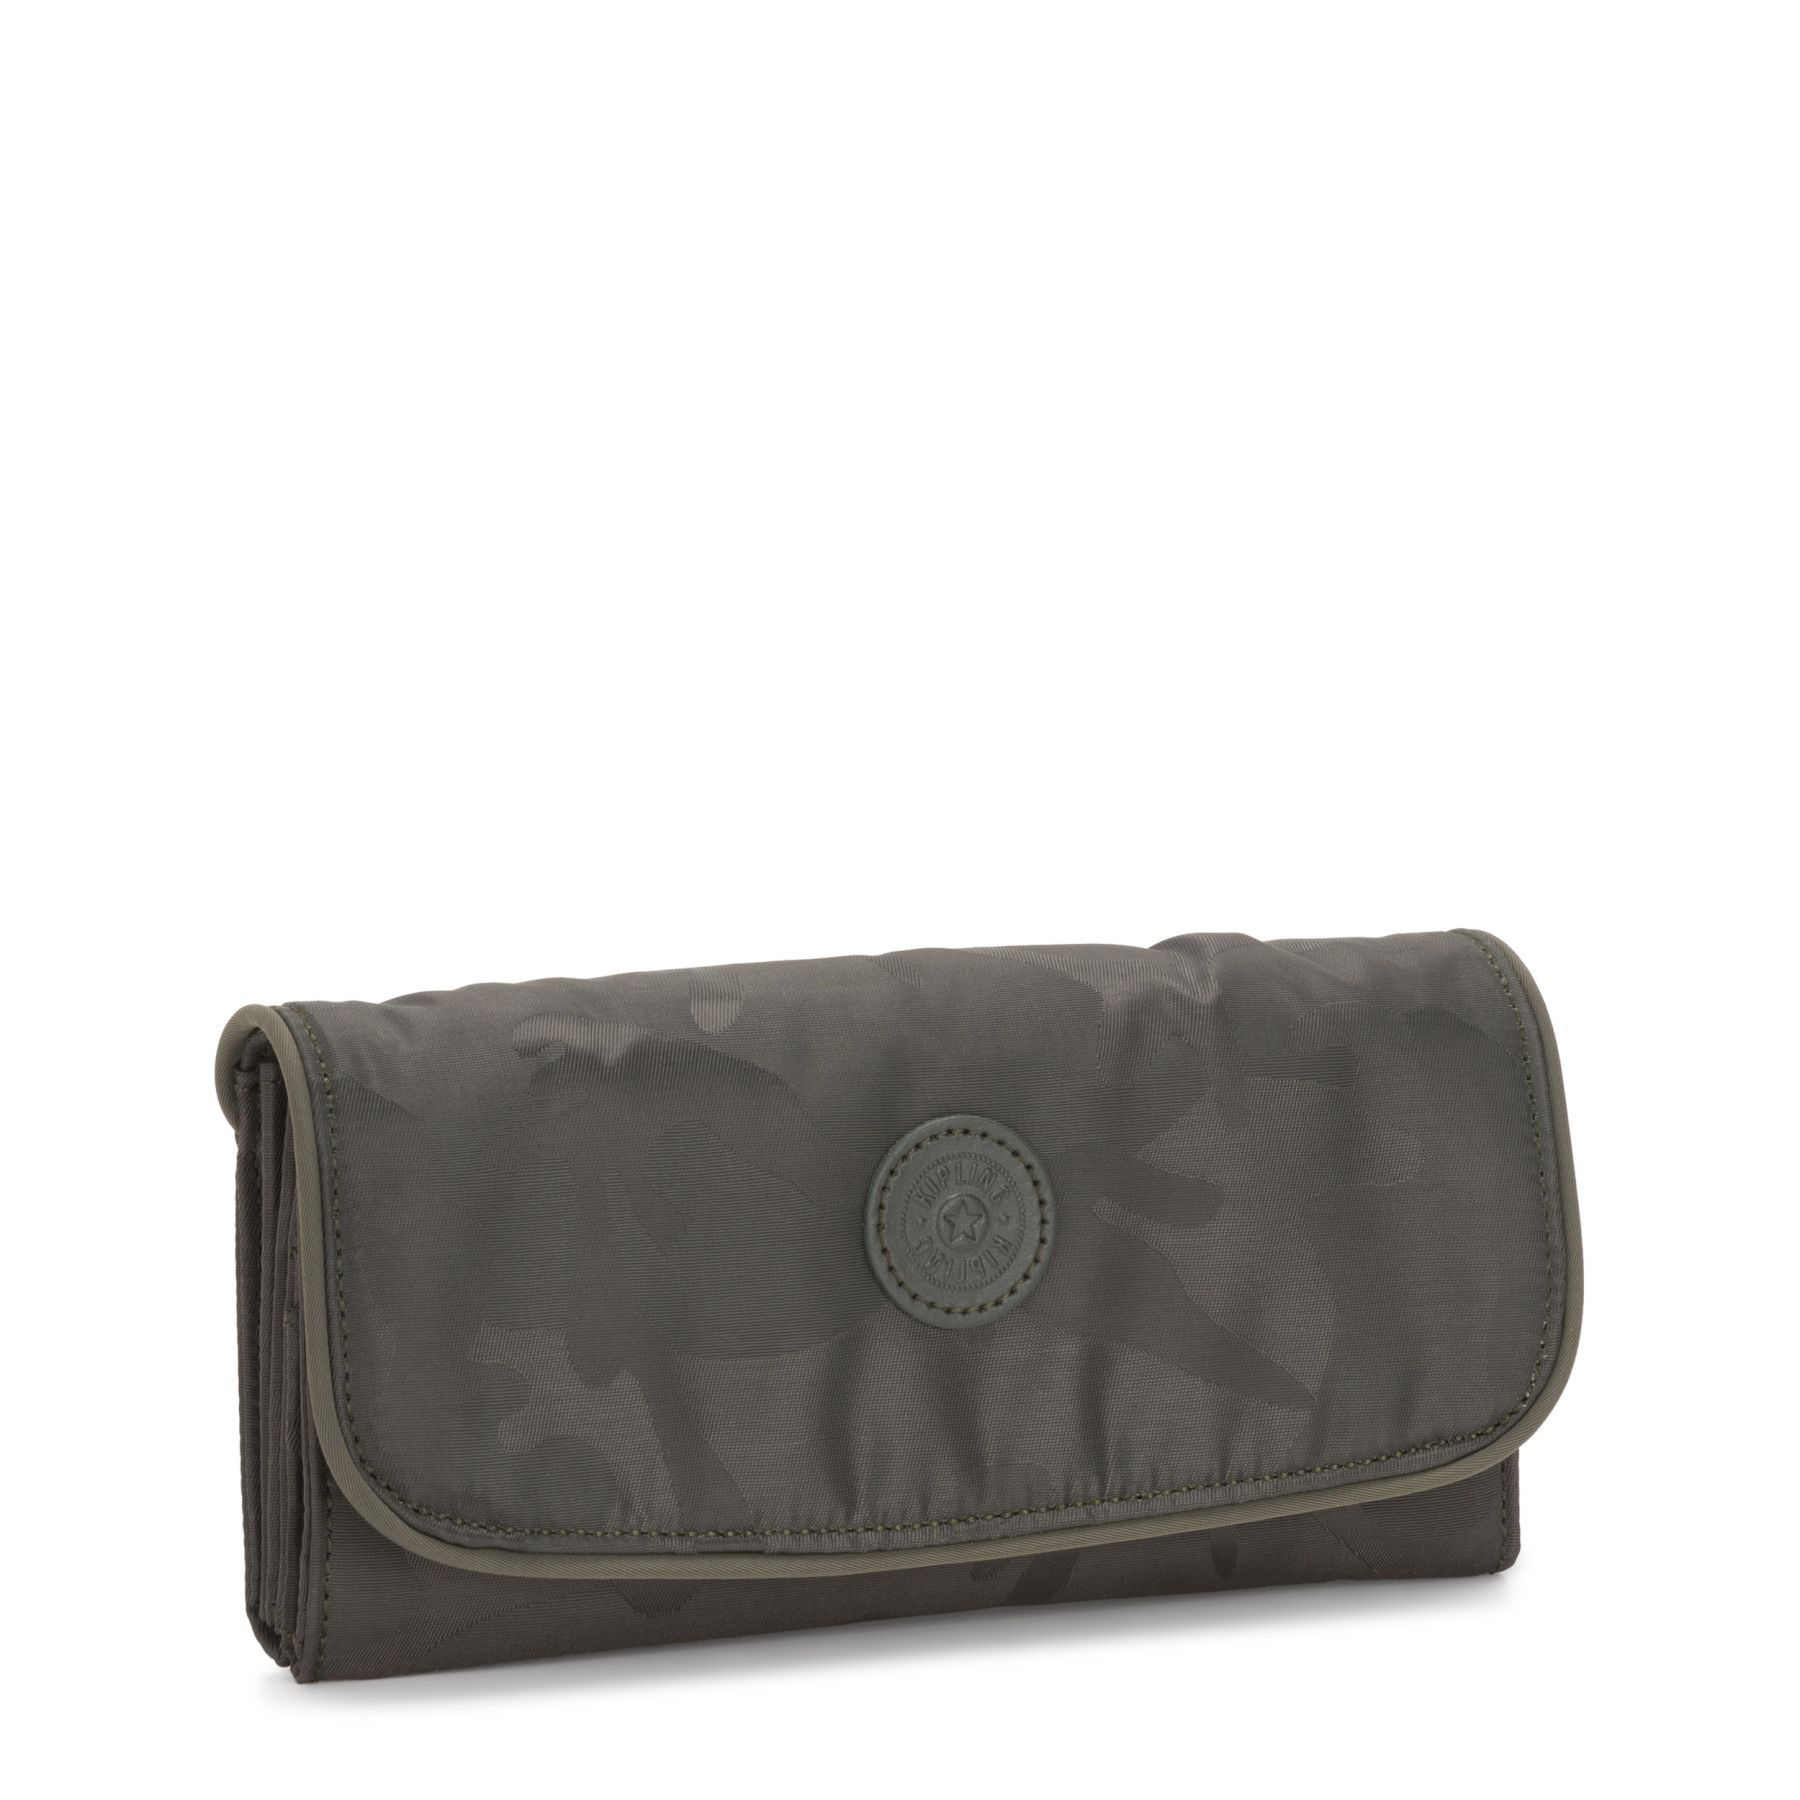 Carteira Grande Money Land Kipling Satin Camo